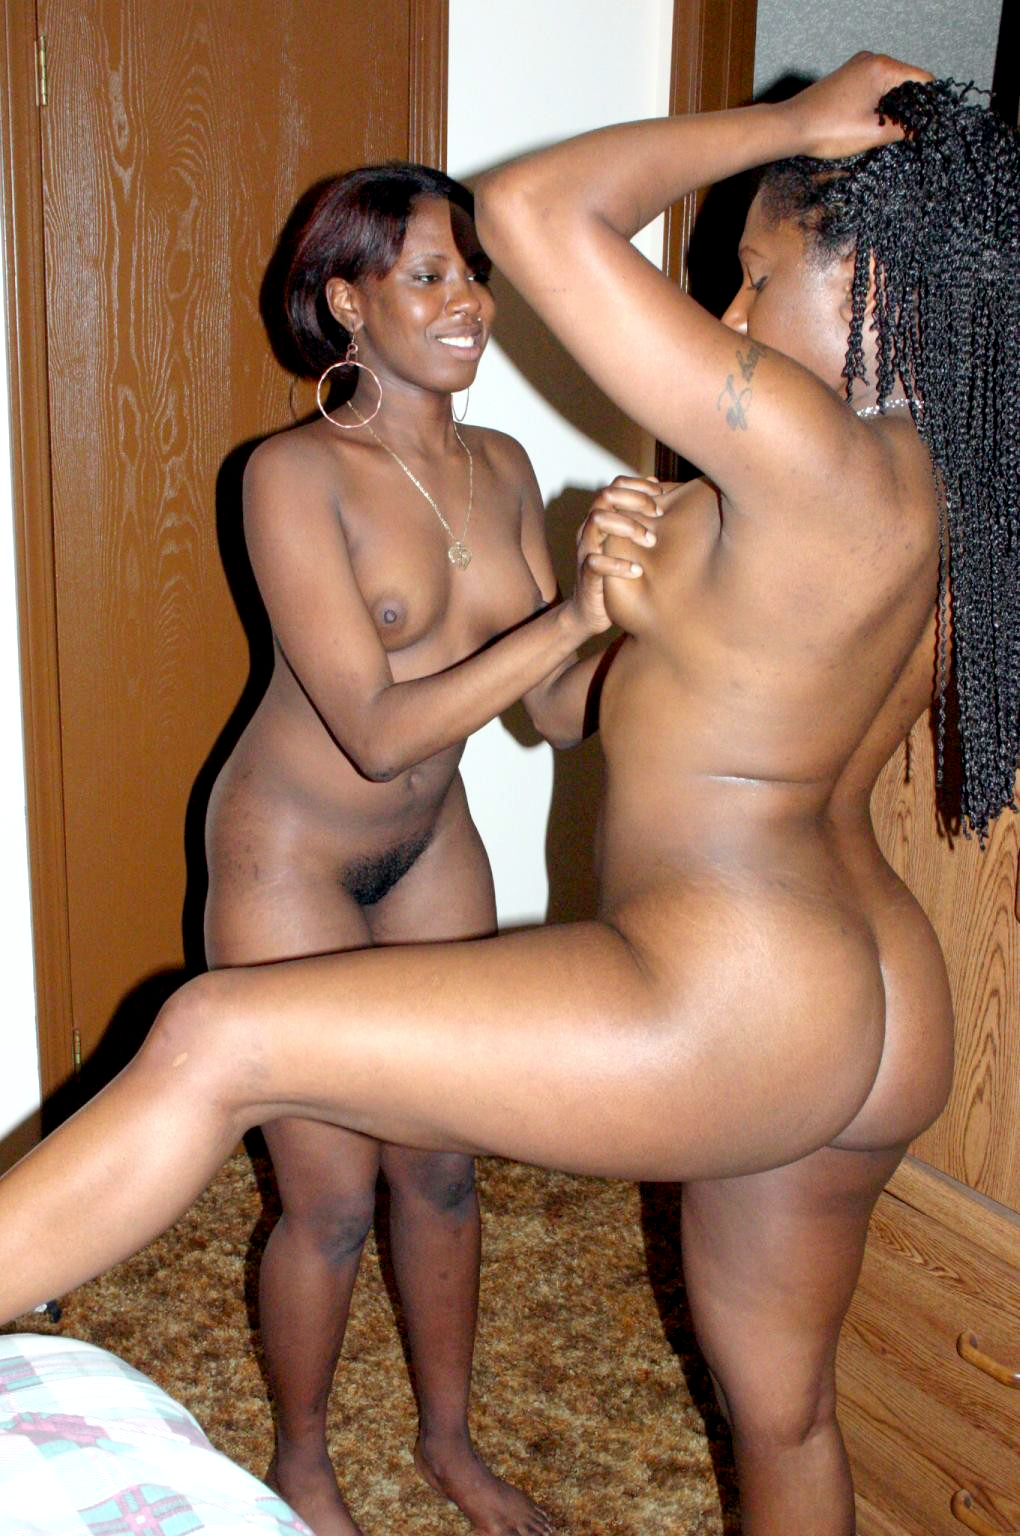 Consider, that black wife posing nude not